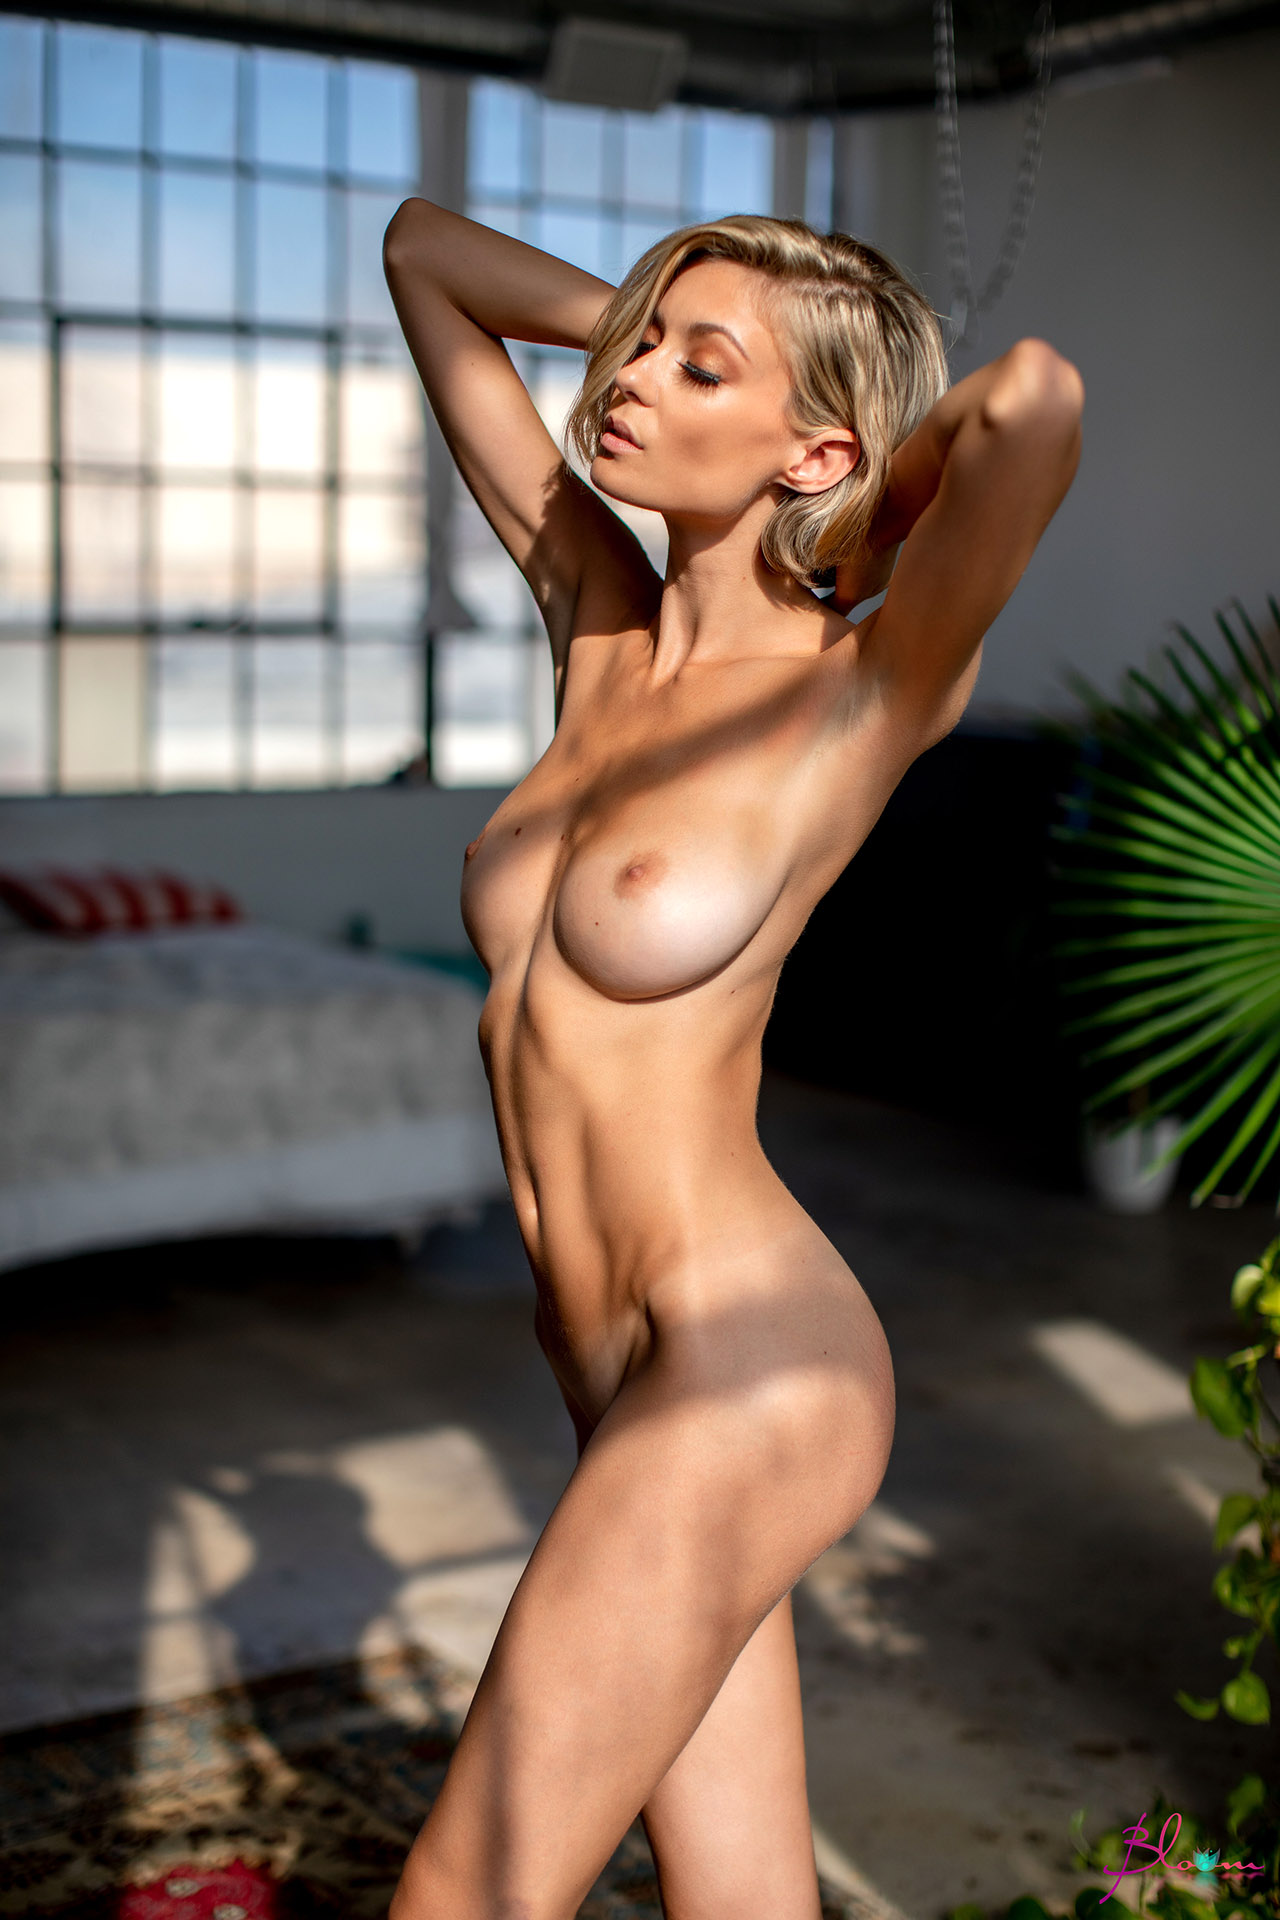 Anna Lisa Wagner in Urban Jungle - Tribute To Beauty